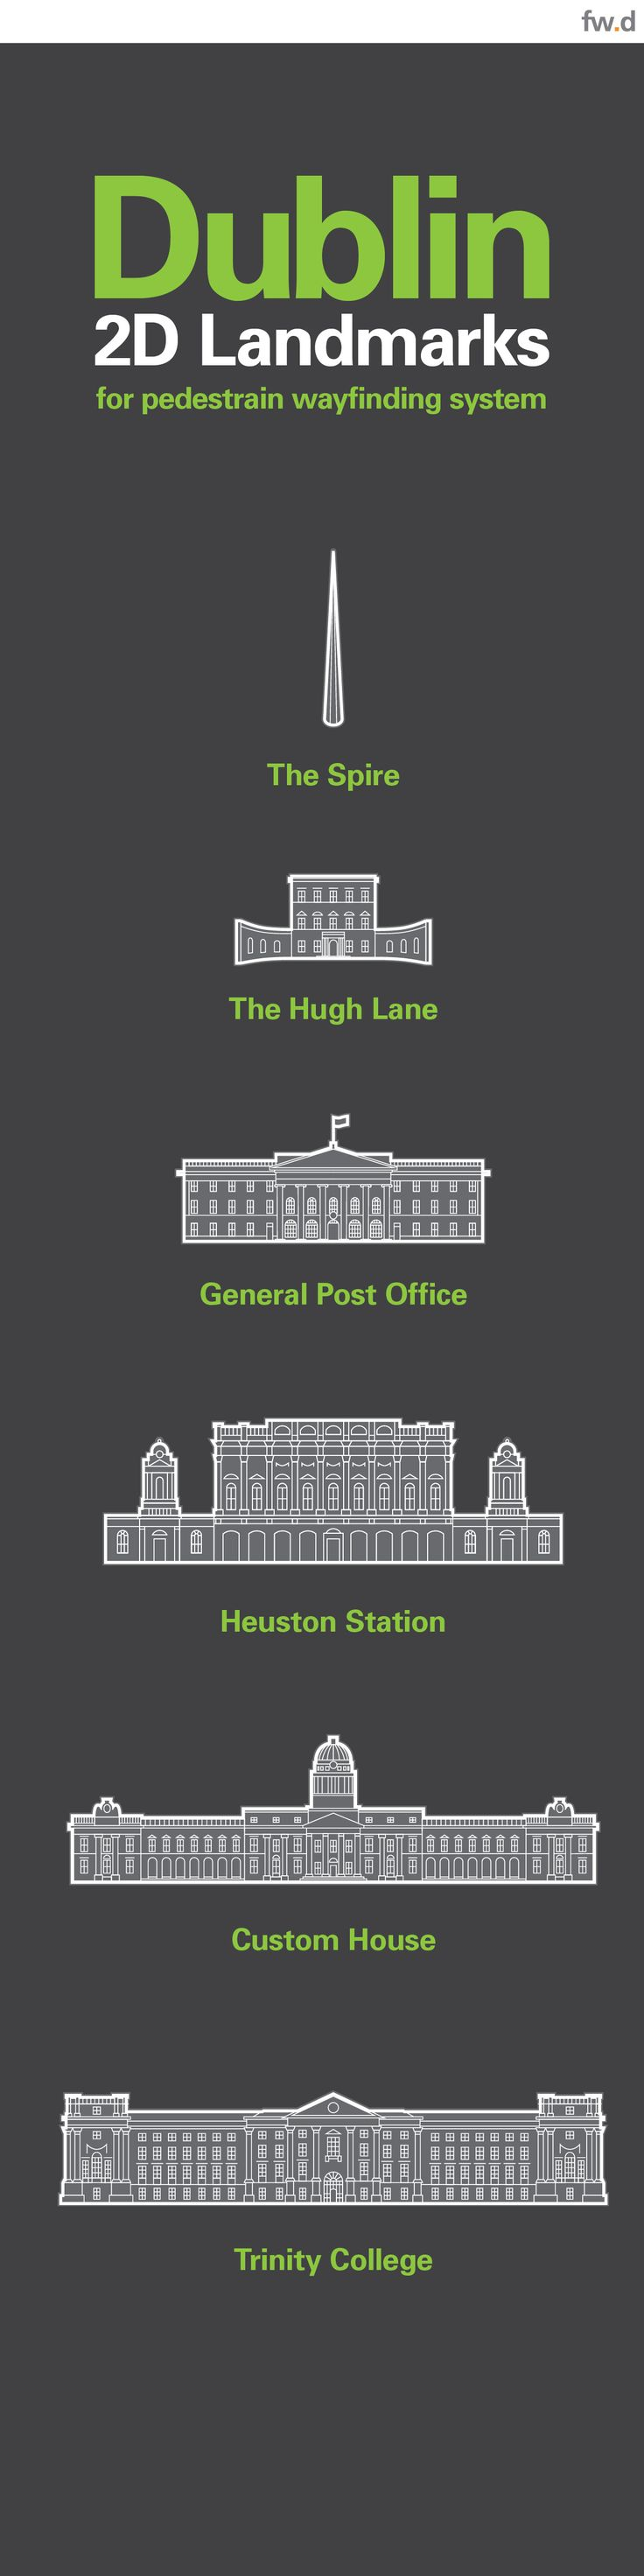 Iconic building illustrations, part of the public transport information graphic guidelines developed for the National Transport Authority of Ireland, by fwdesign.  www.fwdesign.com  #icons #buildings #city #vector